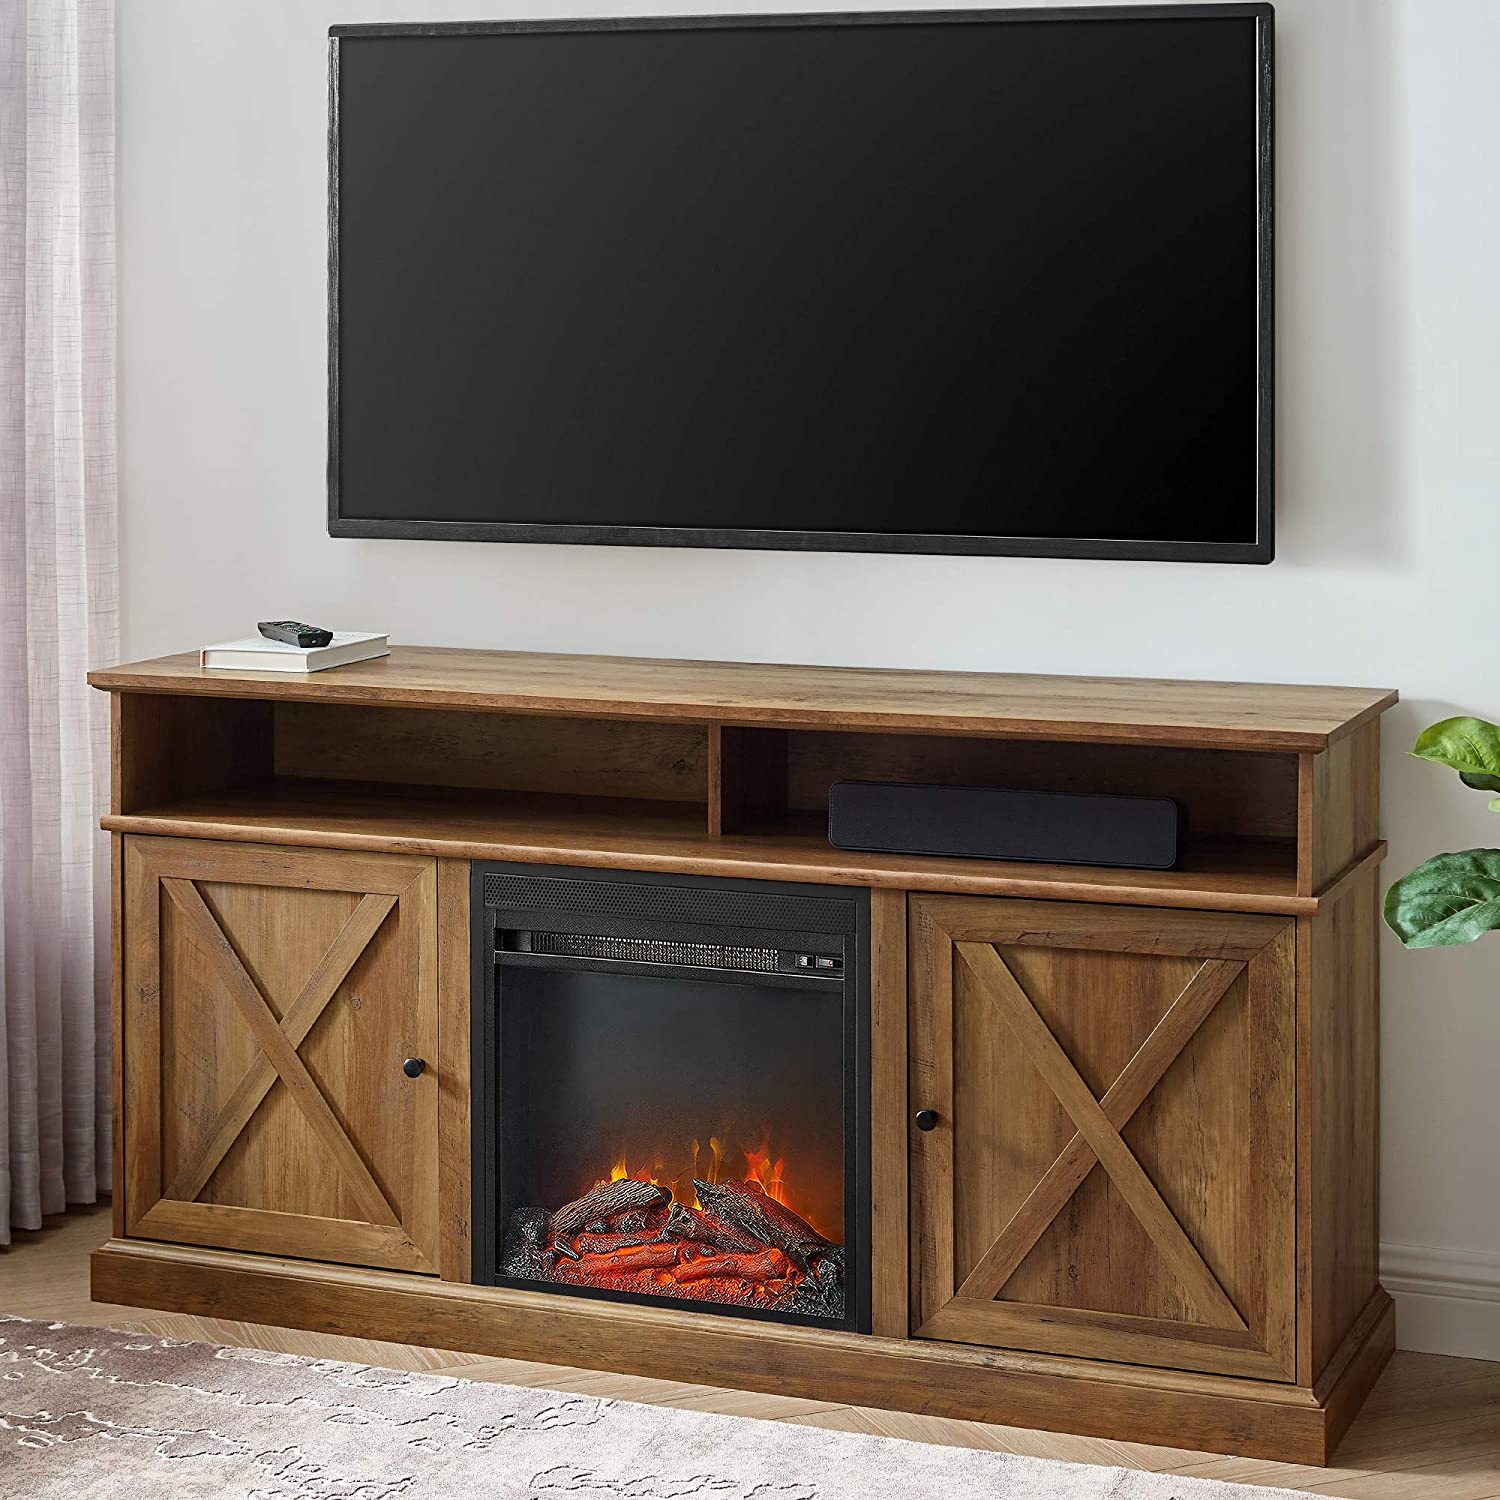 Walker Edison Atticus Farmhouse Tall X Barn Door Fireplace Stand for TVs up to 65 Inches, Rustic Oak